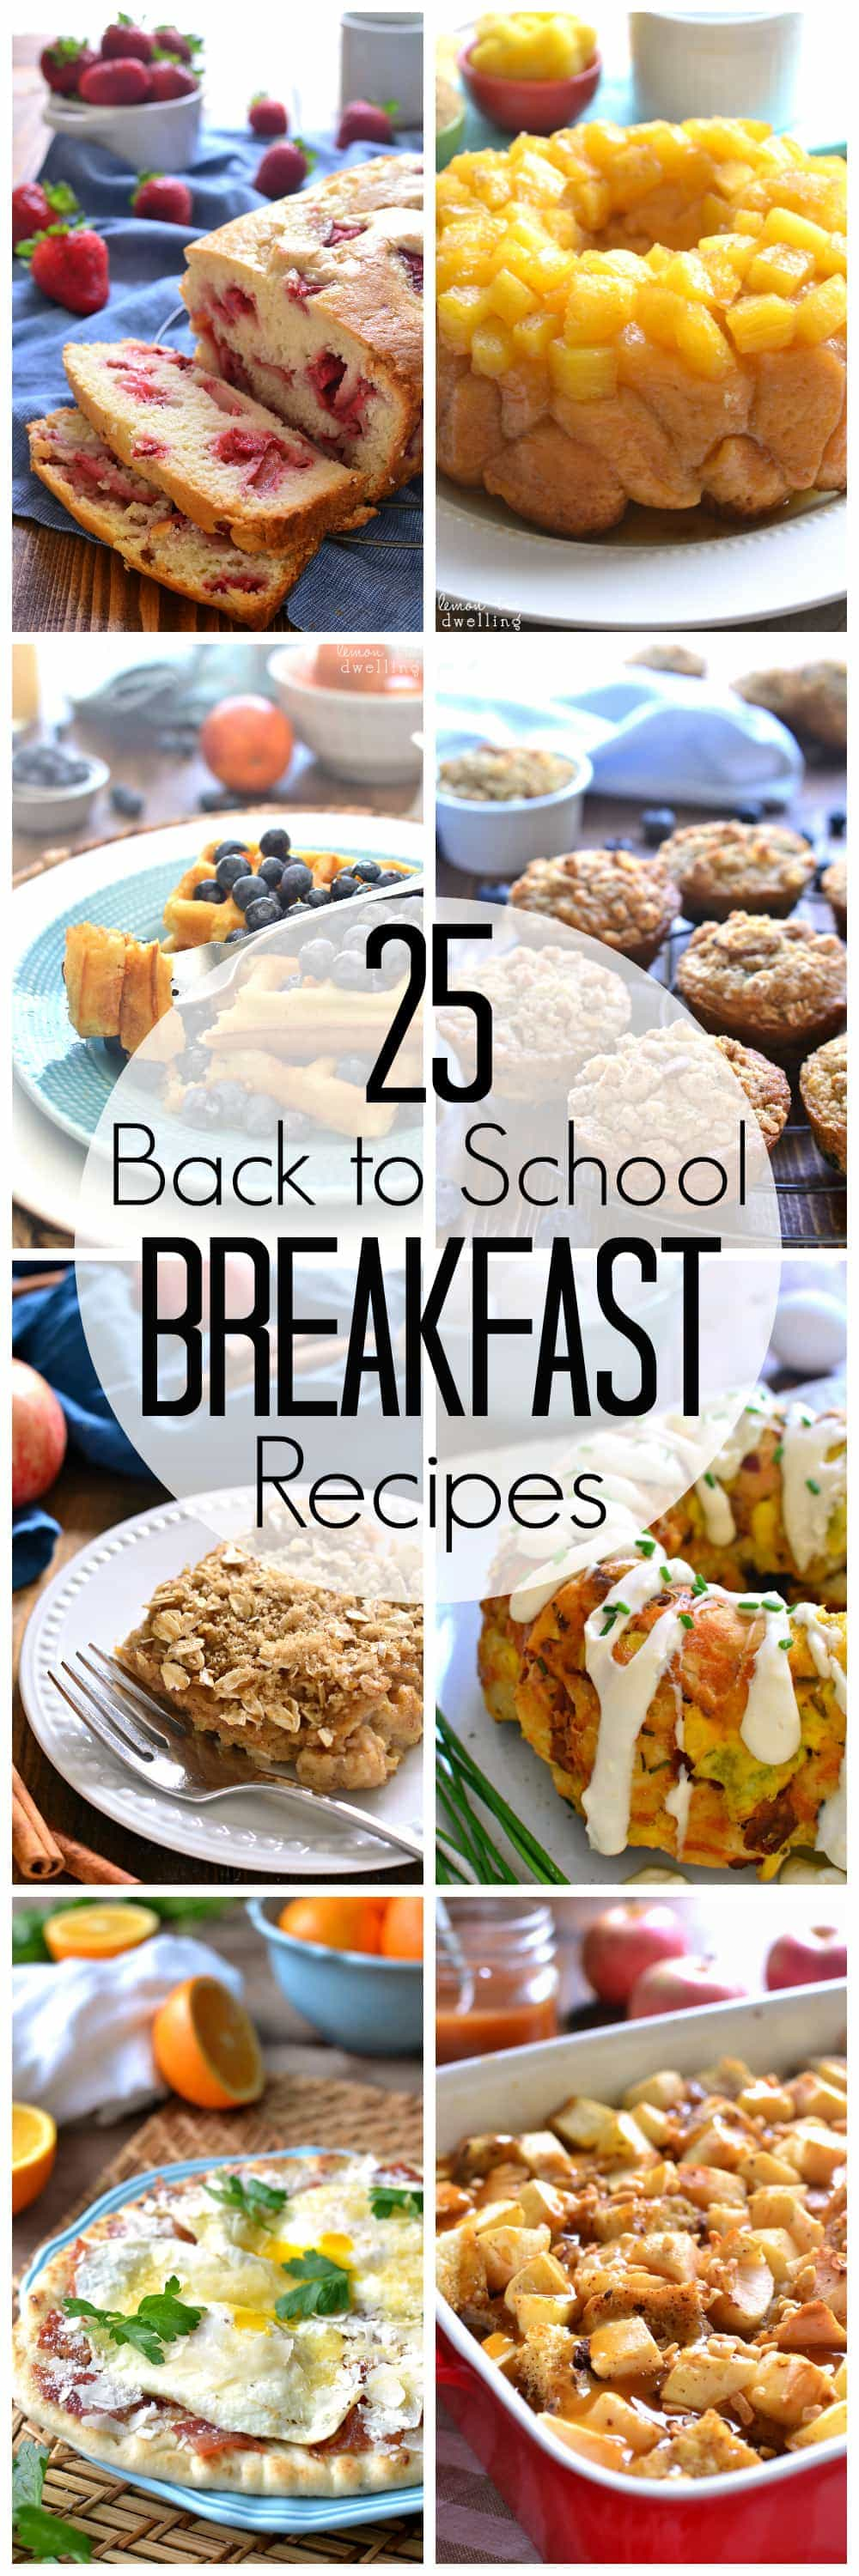 25 kid-tested Breakfast Recipes - just in time for back to school!